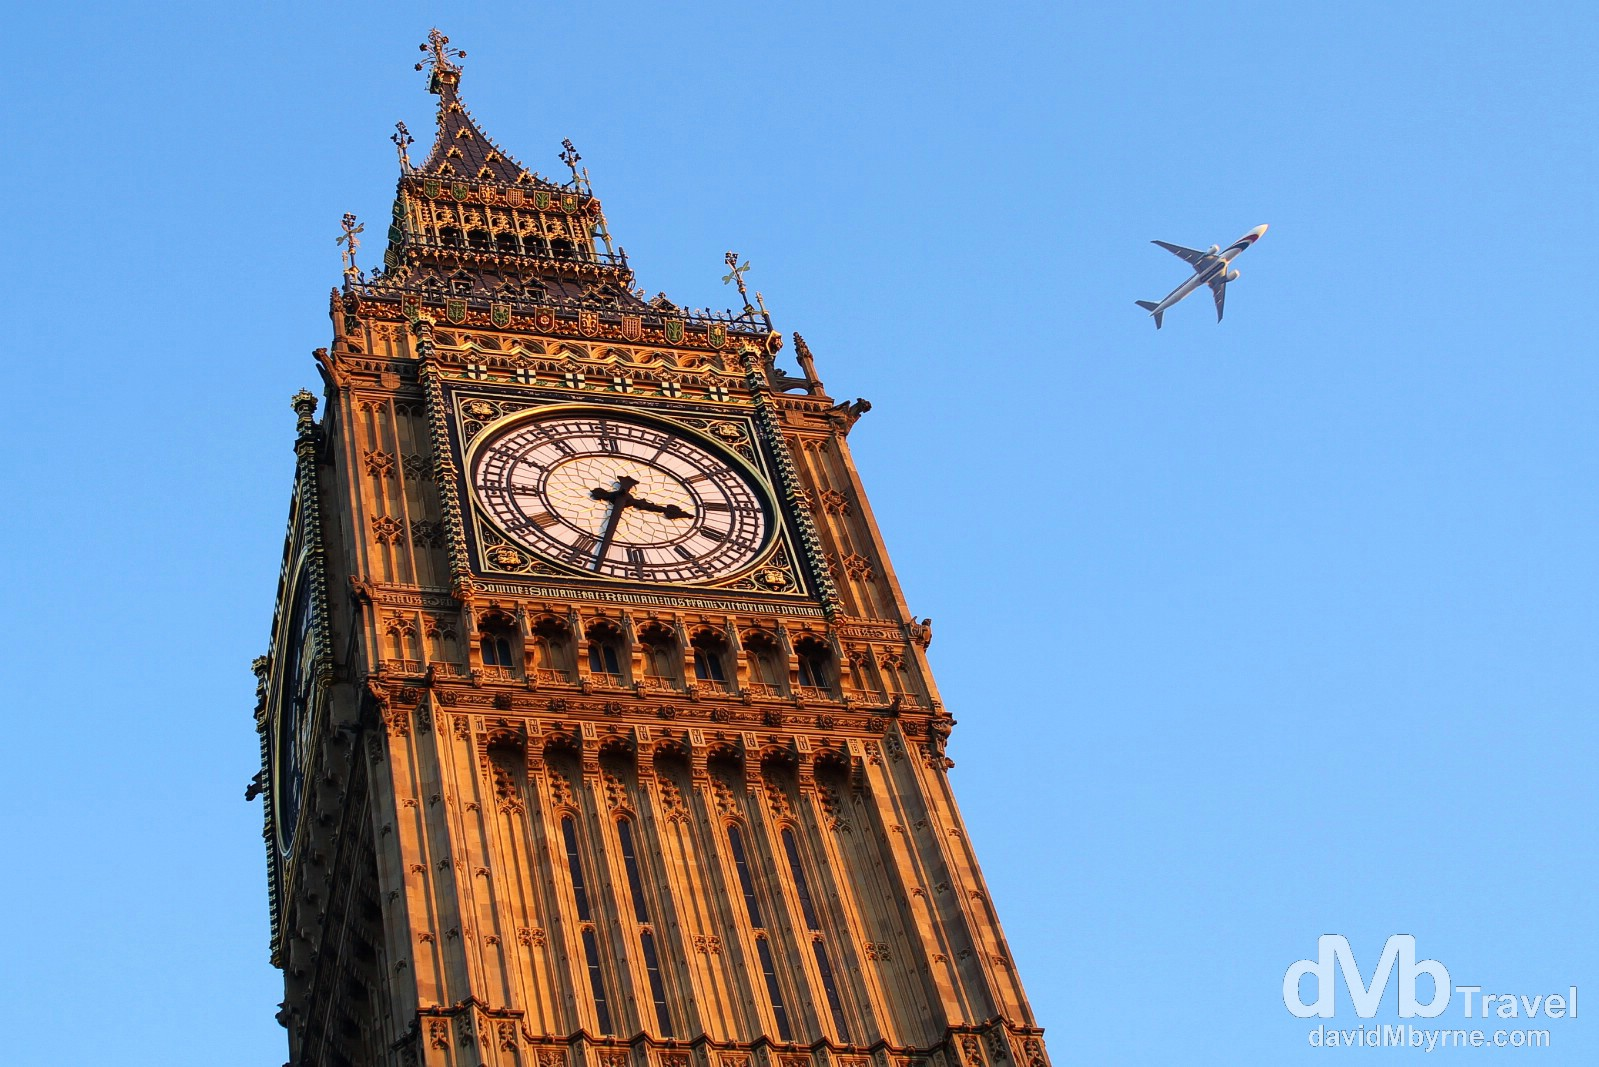 Big Ben, Westminster, London, England. December 8th 2012.